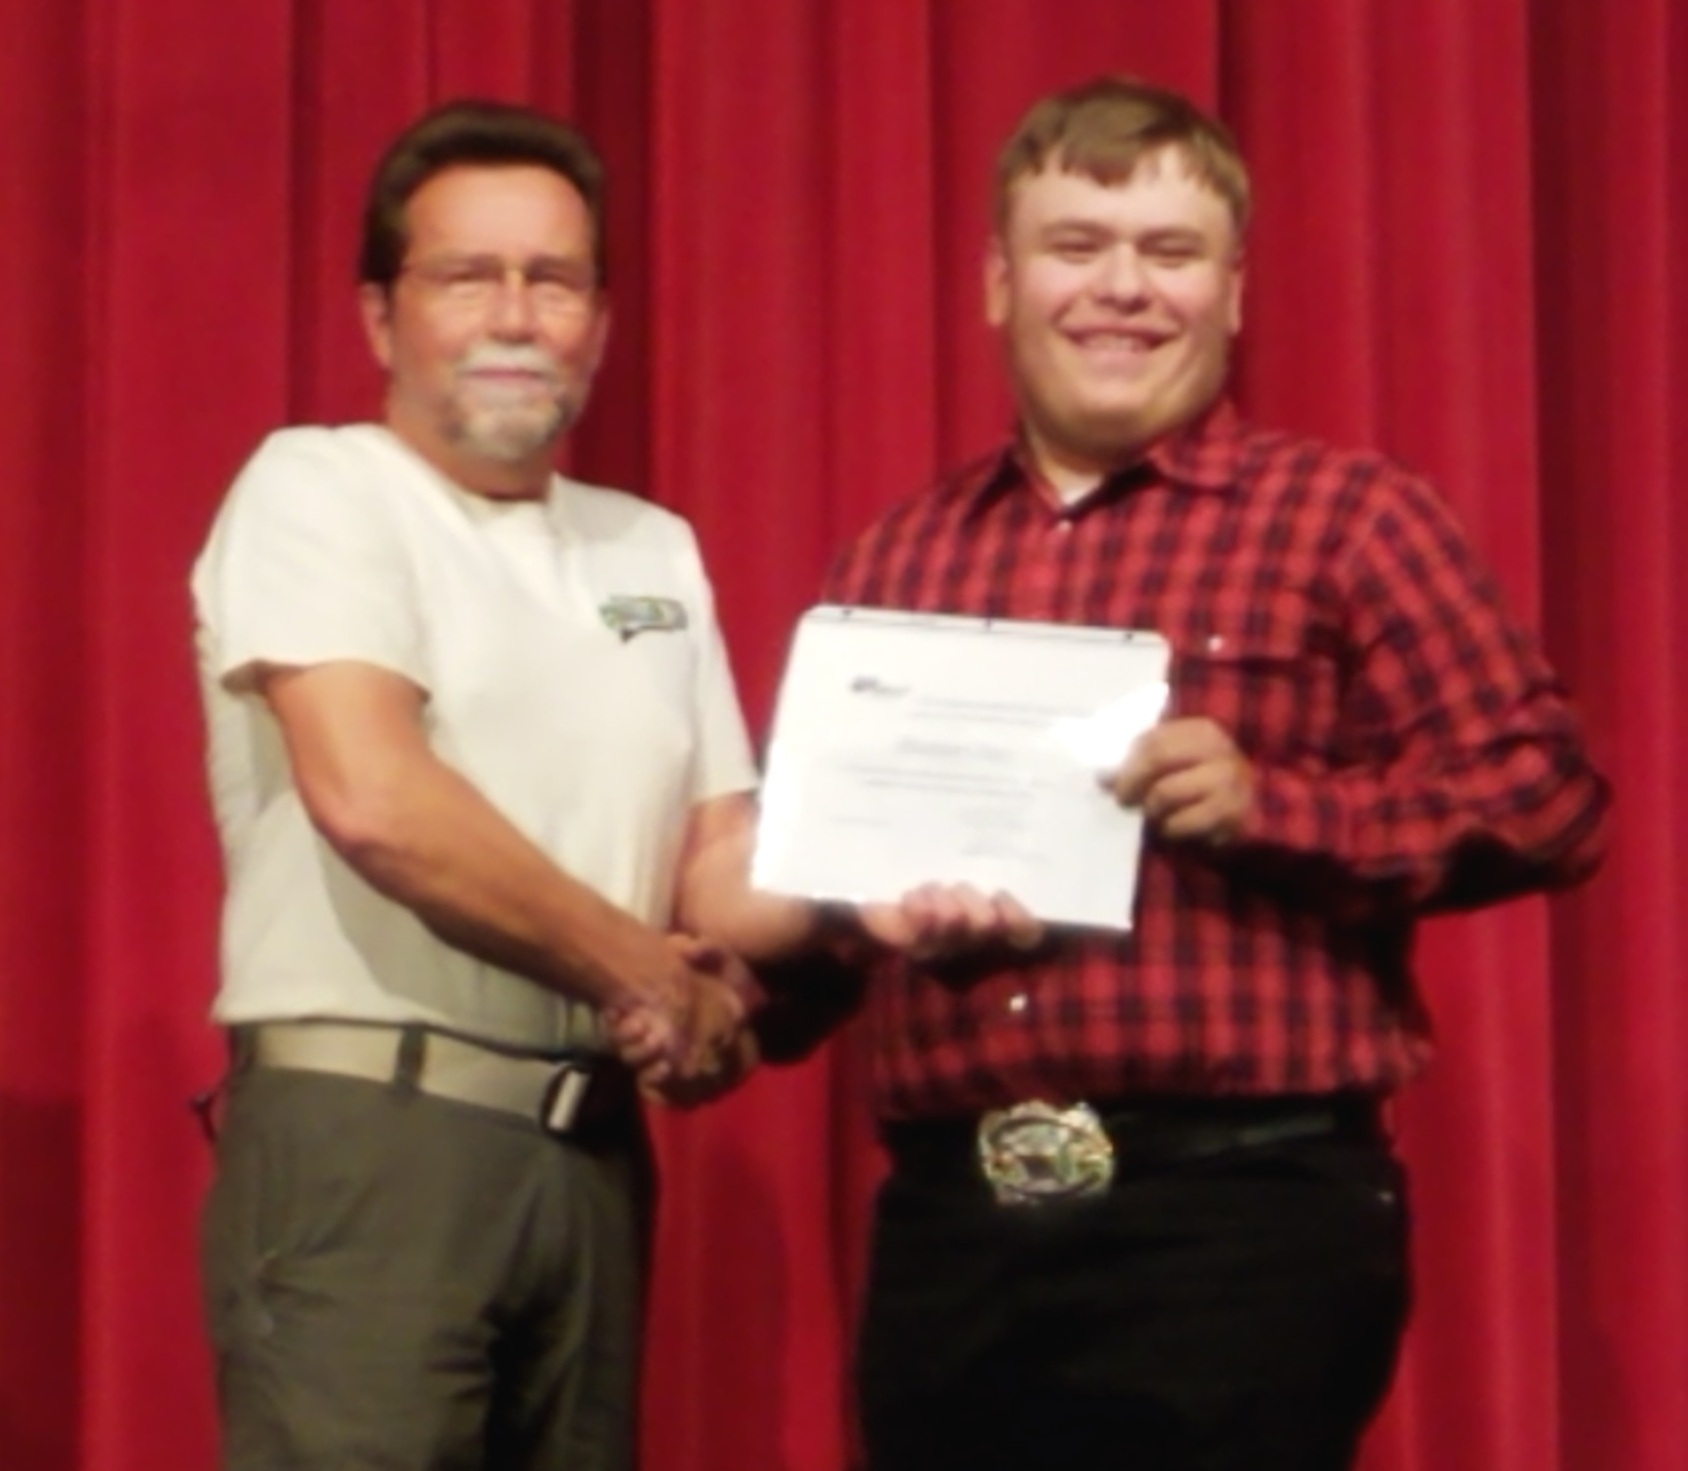 Scholarship being awarded on May 8th to Hunter Guy by Jef Jerde, Sparta Rod & Gun Club Secretary and Scholarship Committee Chairman